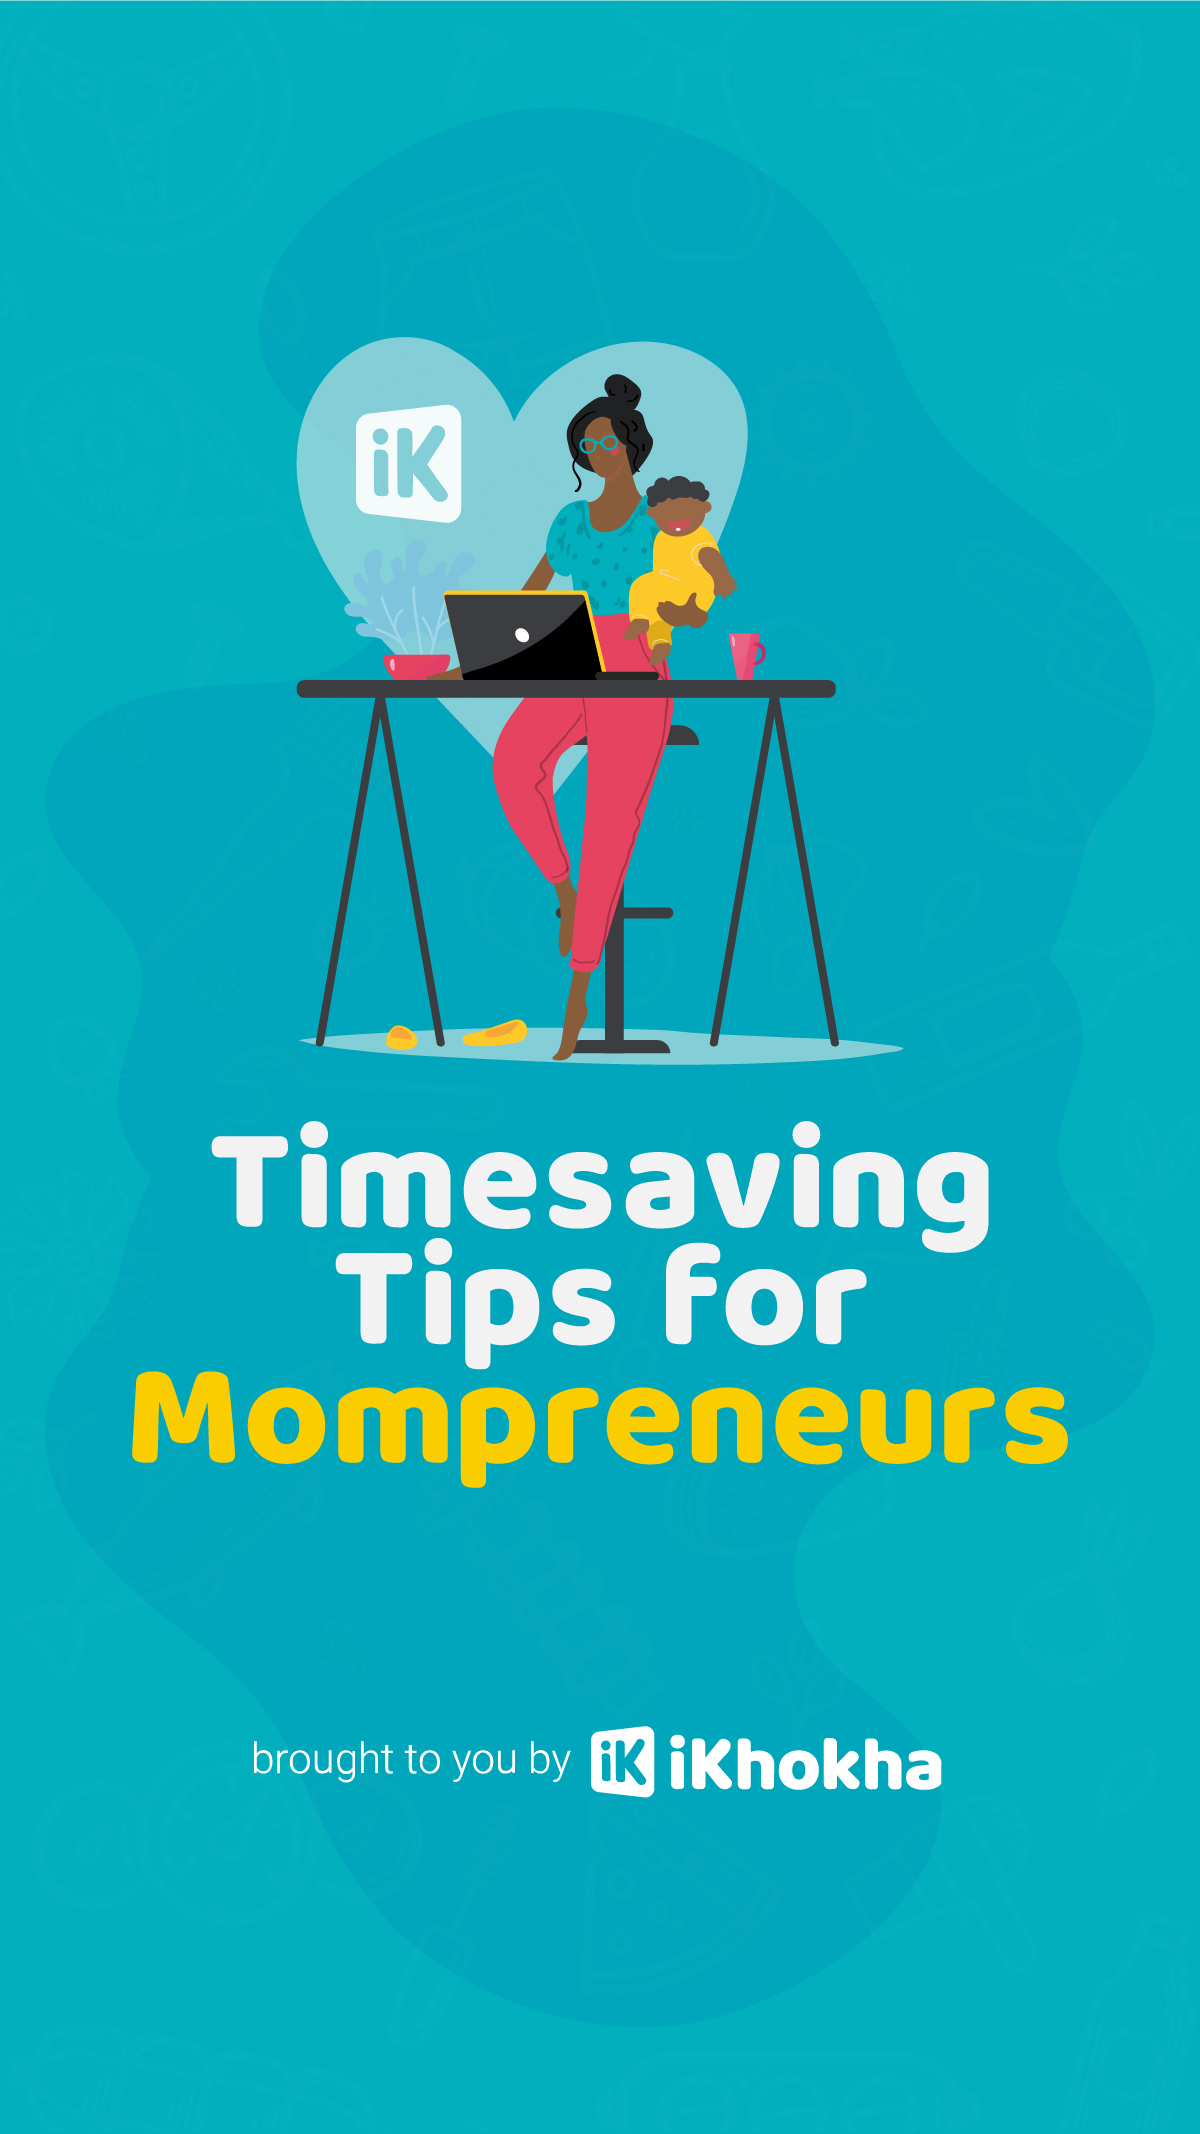 Time saving tips for mompreneures